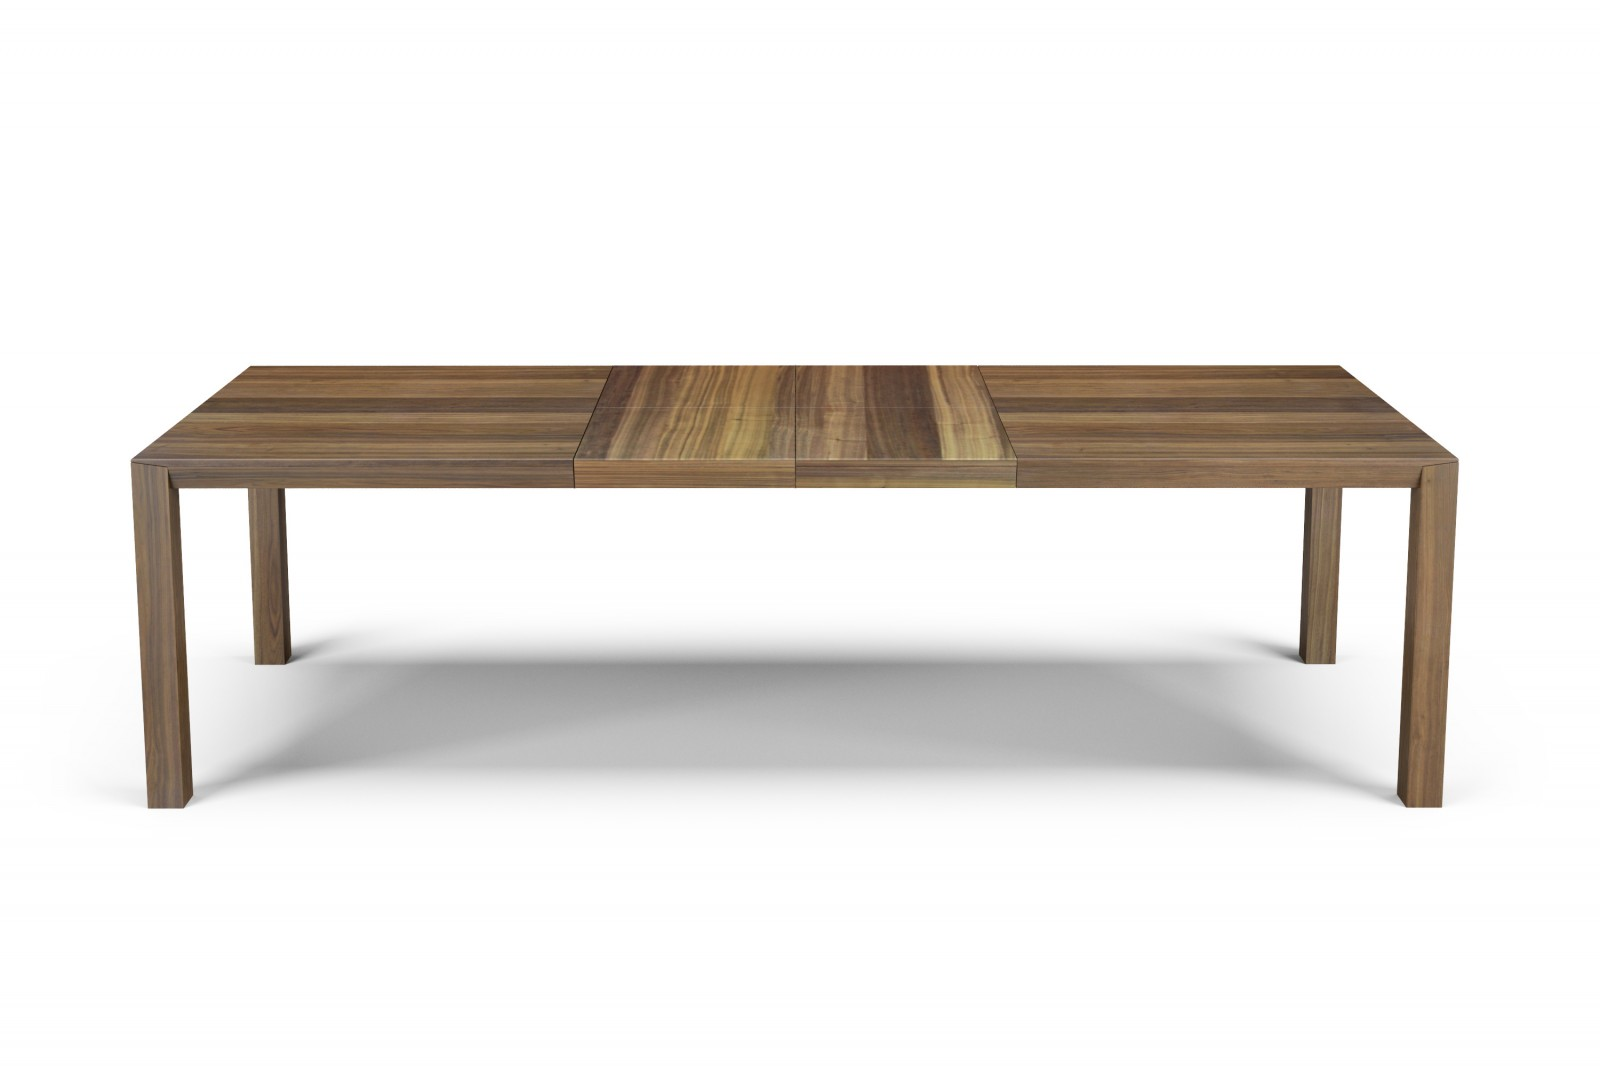 72'' double extension table